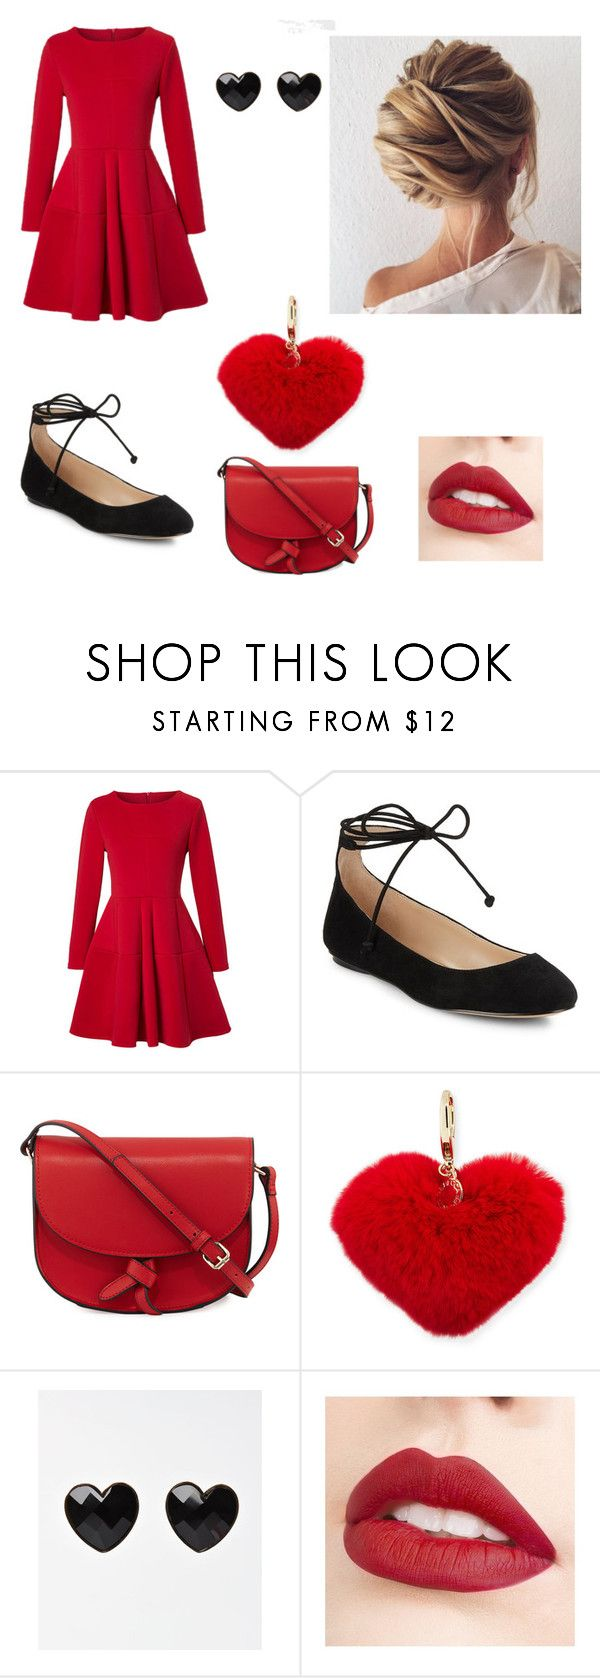 """""""Valentine's Day"""" by a-dam-fangirl ❤ liked on Polyvore featuring WithChic, Karl Lagerfeld, KC Jagger, Rebecca Minkoff and Jouer"""